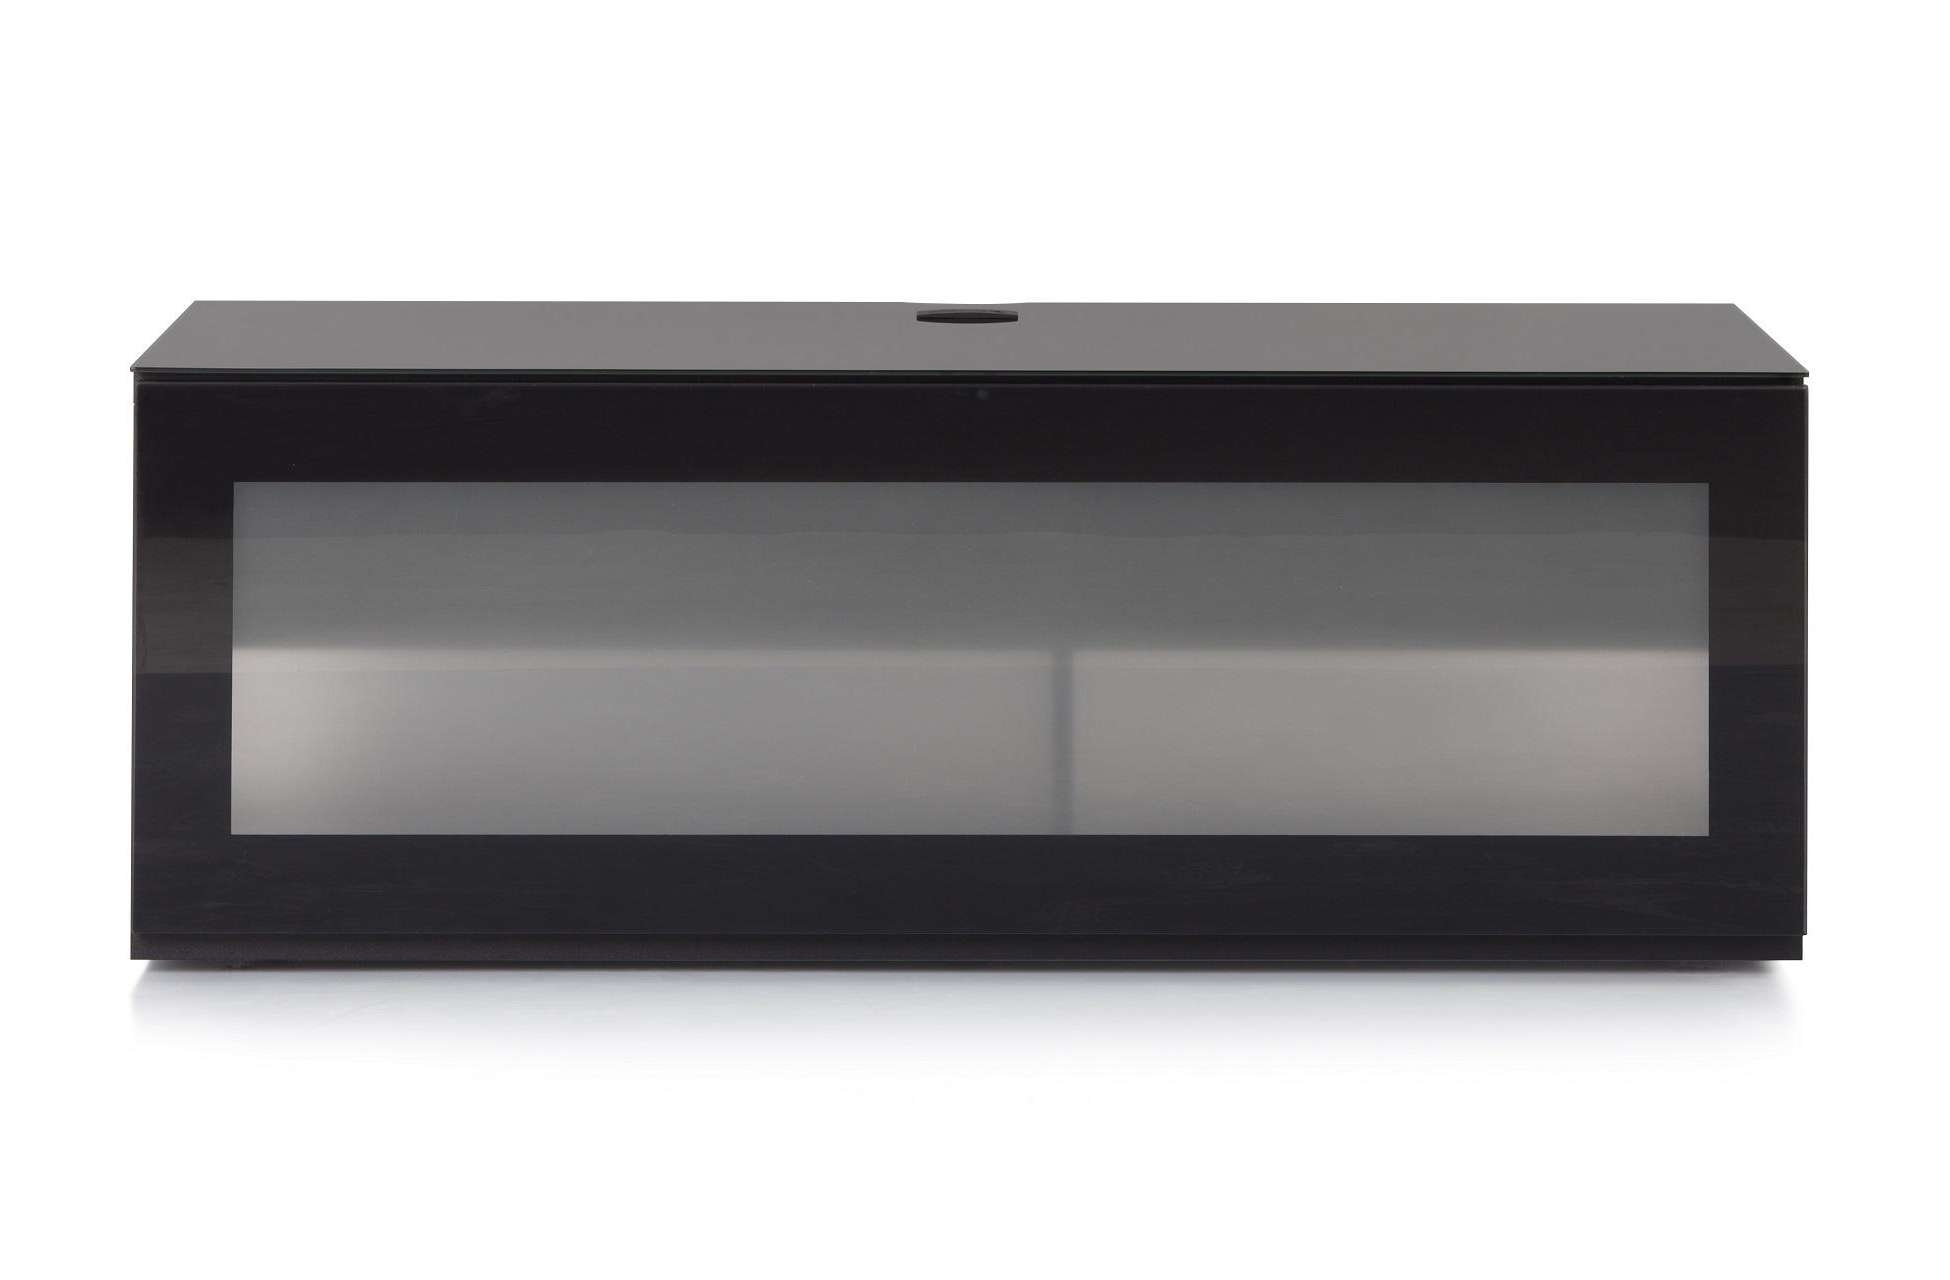 Sonorous St120I Gloss Black | Tv Cabinet | Richer Sounds For Sonorous Tv Cabinets (View 8 of 20)